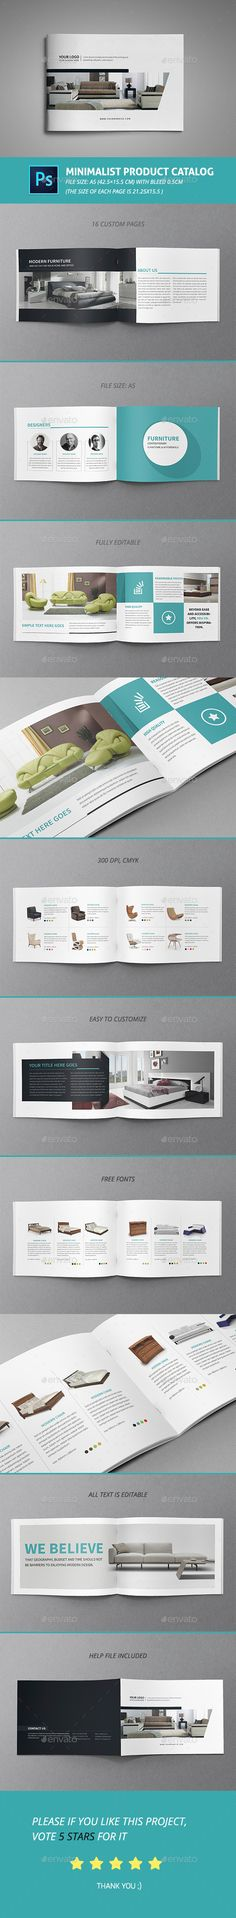 Minimalist Product Catalog Template #printdesign #design Download: http://graphicriver.net/item/minimalist-product-catalog/12077413?ref=ksioks